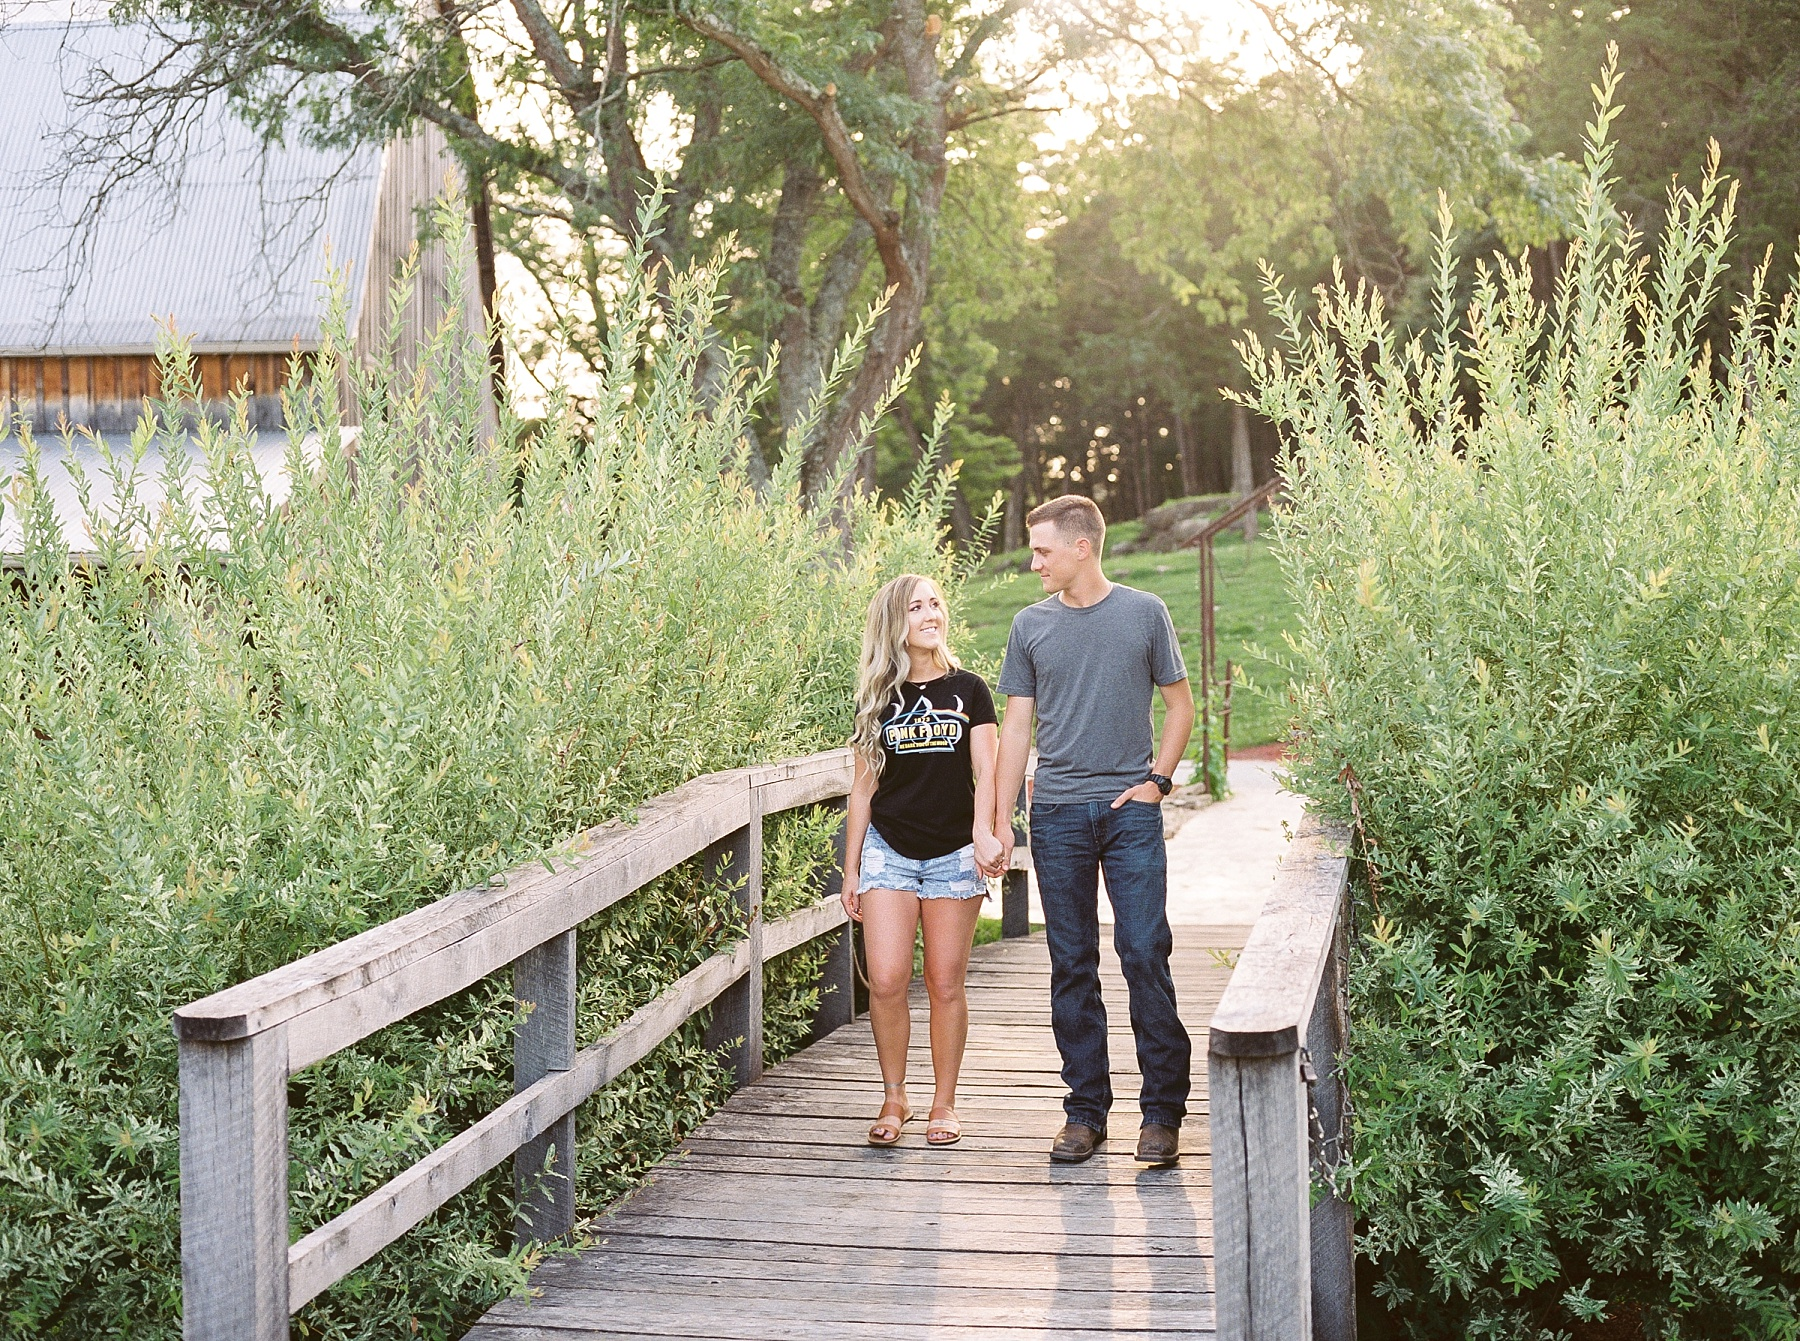 Golden Hour Summer Engagement Session at Lakeside Valley and Vineyards at Kempkers Back 40 by Kelsi Kliethermes Photography Best Missouri and Maui Wedding Photographer_0008.jpg